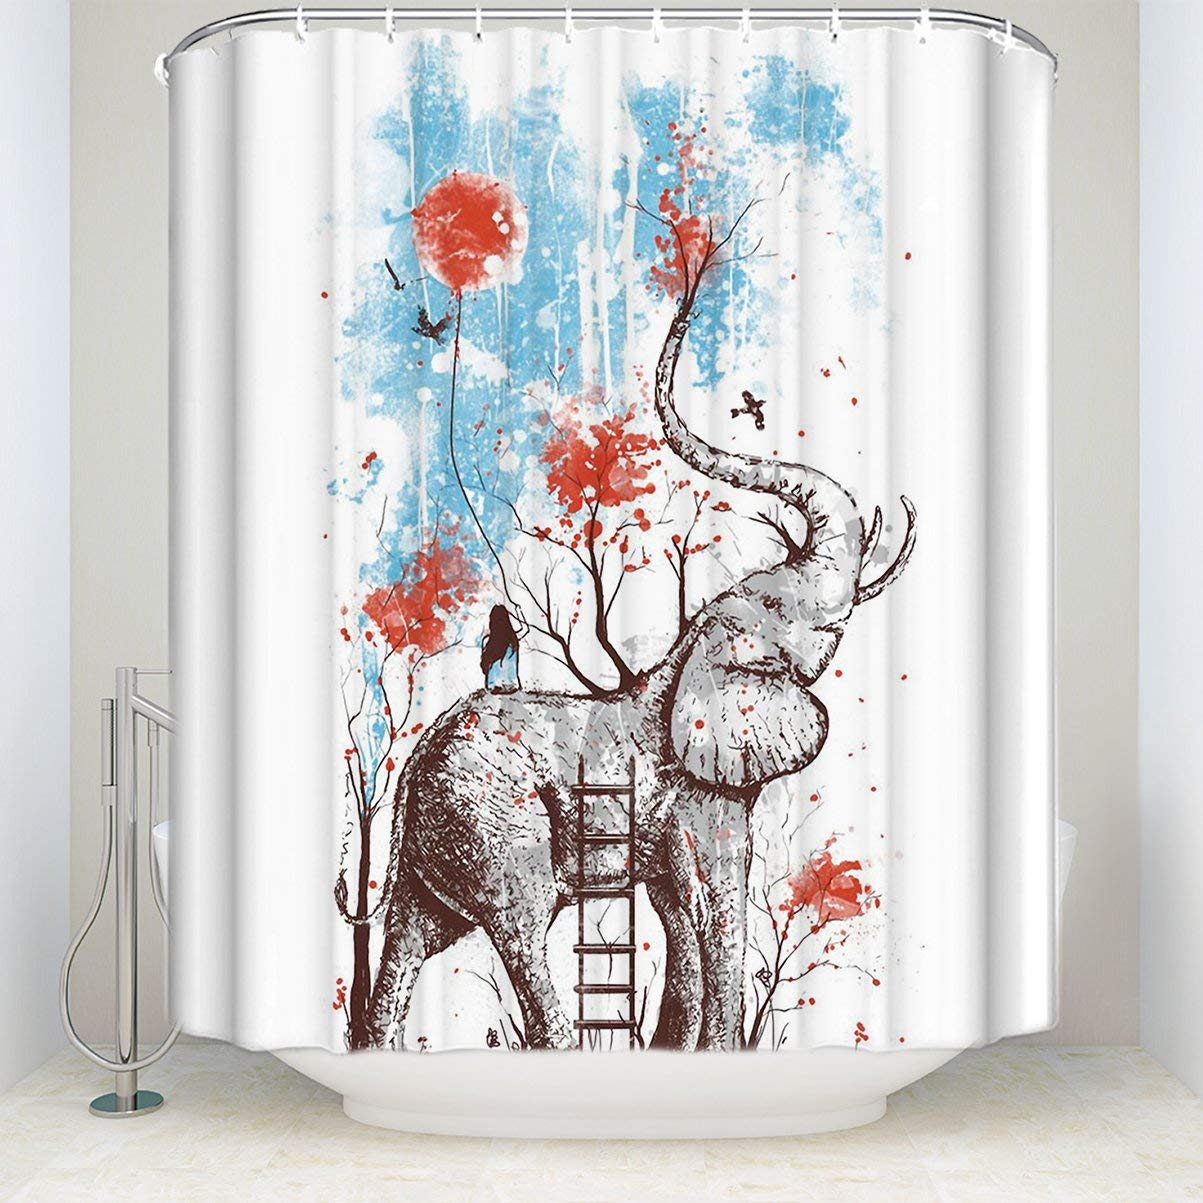 CyCoShower Funny Shower Curtain Elephant Playing With Girl Art Painting Print Bathroom Decor Polyester Fabric